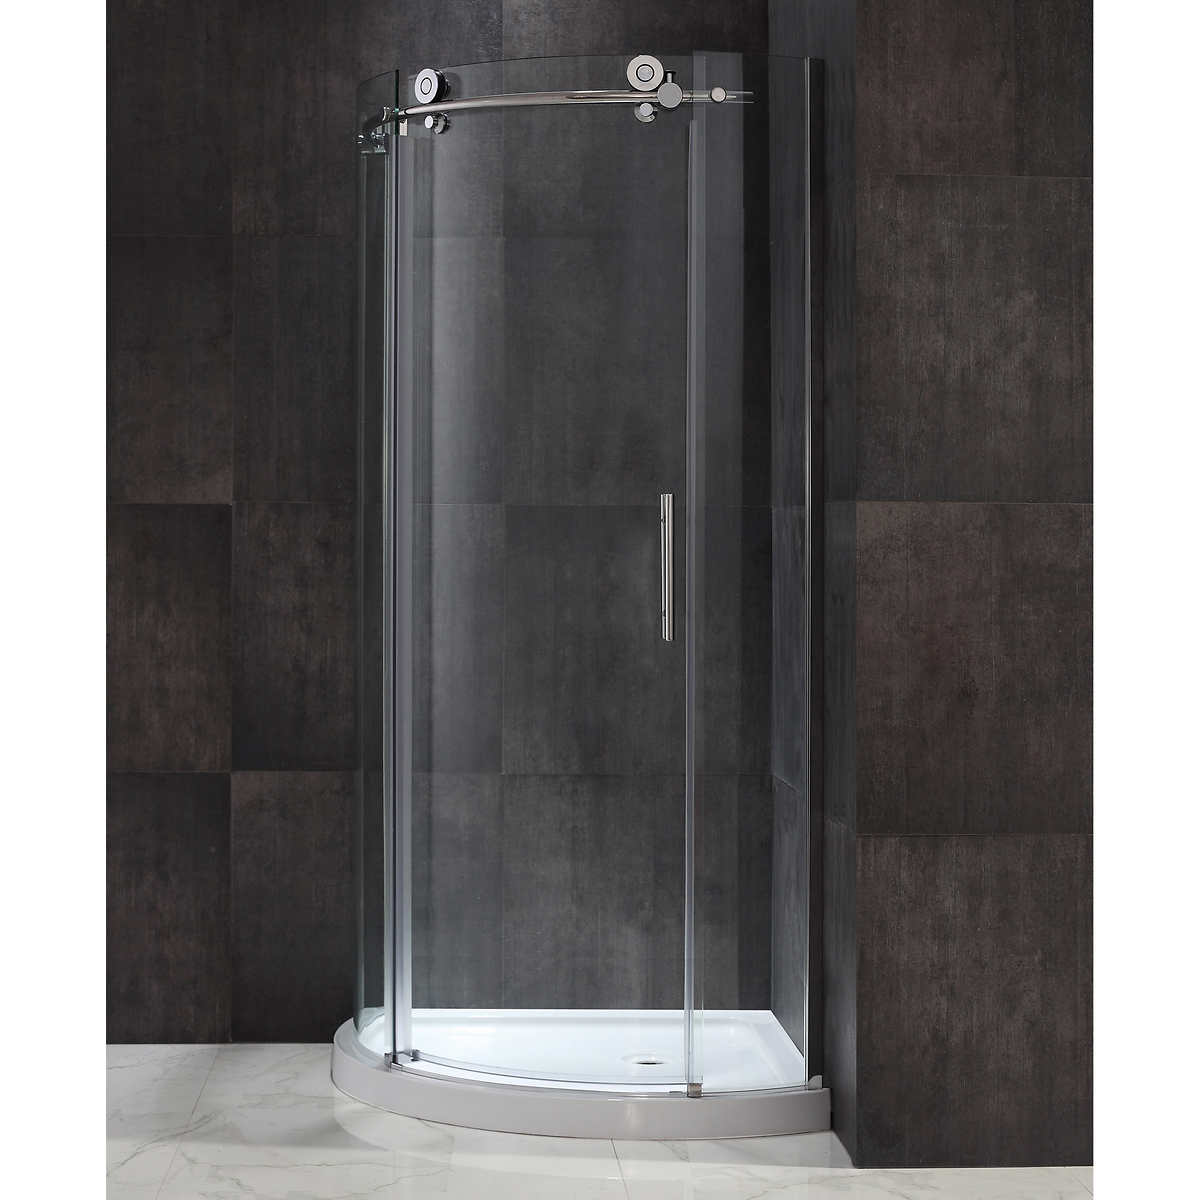 Ove Madison 60 in. Shower Enclosure with 10 mm Tempered Glass